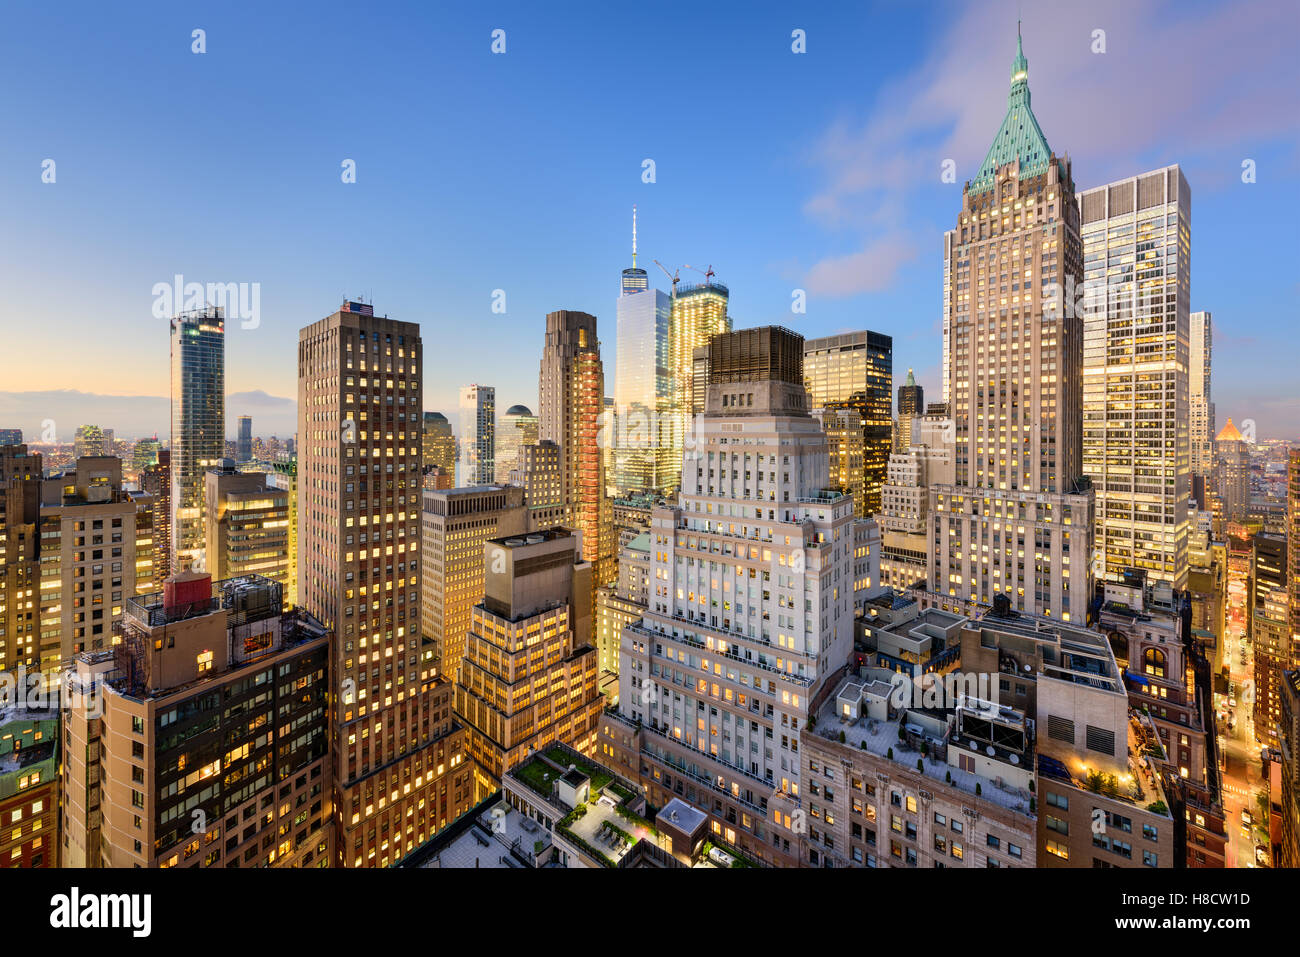 New York City Financial District cityscape at Dusk. Photo Stock